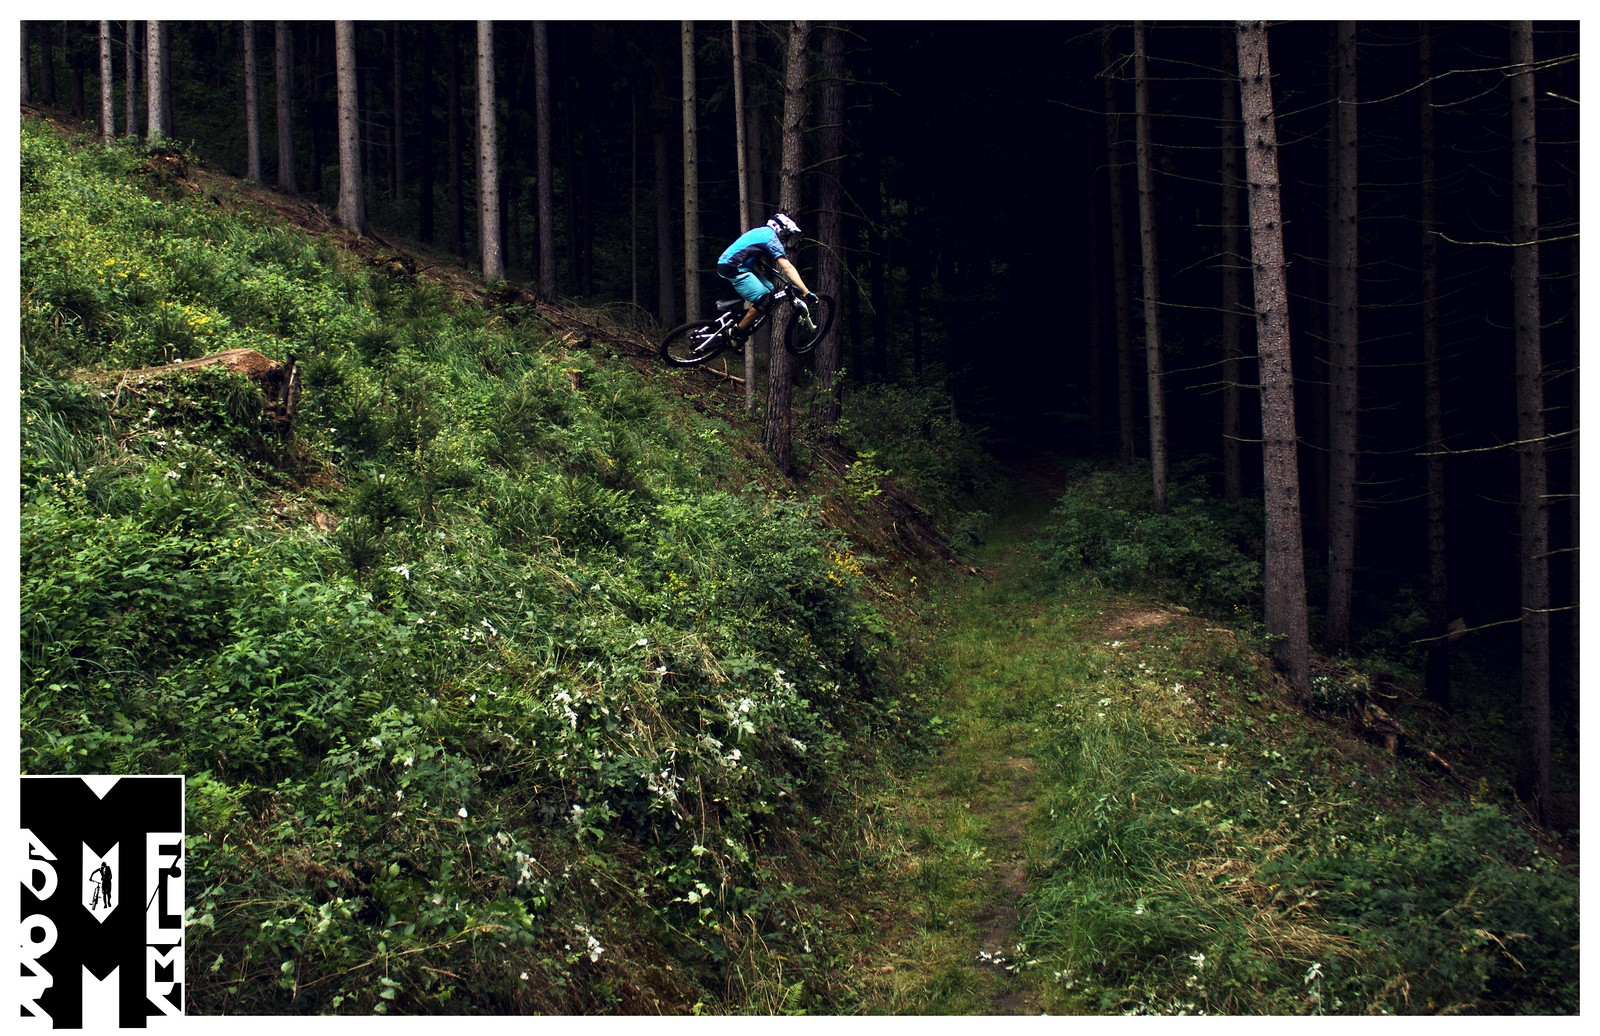 Pavel Schwarz - Roadgap - Mad Moss - Mountain Biking Pictures - Vital MTB